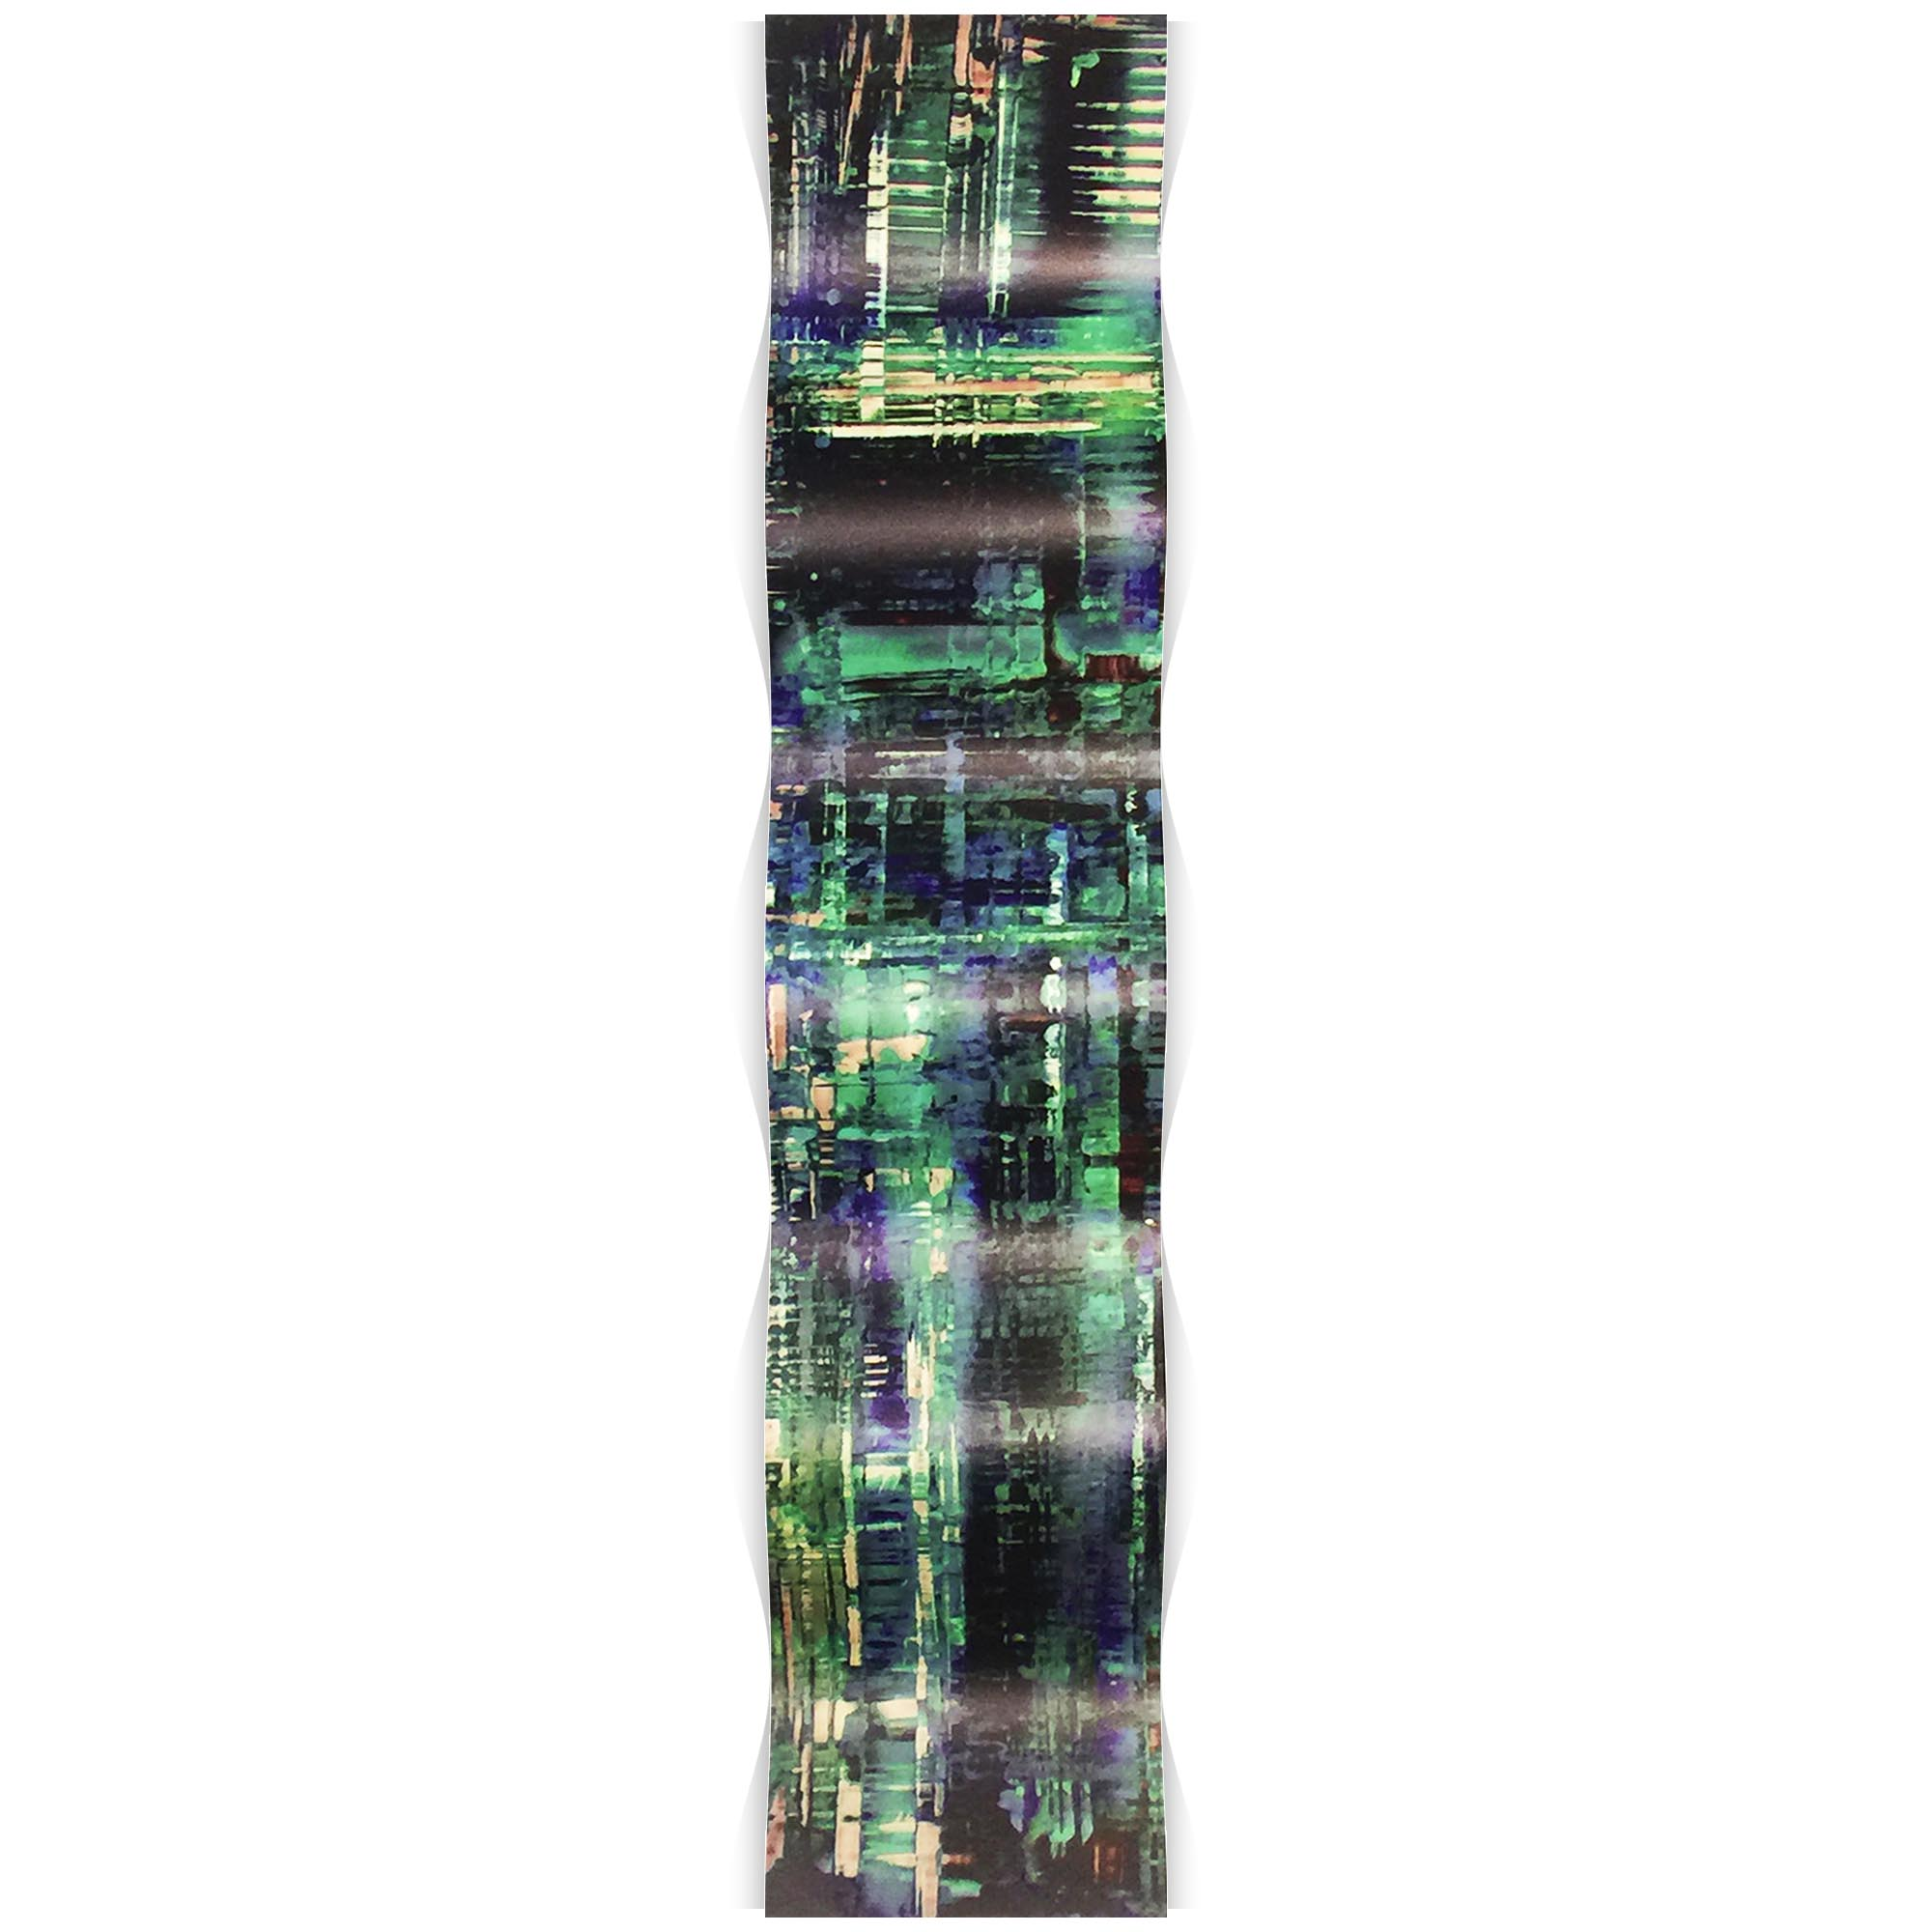 Aporia Blue Wave 9.5x44in. Metal Eclectic Decor - Image 2